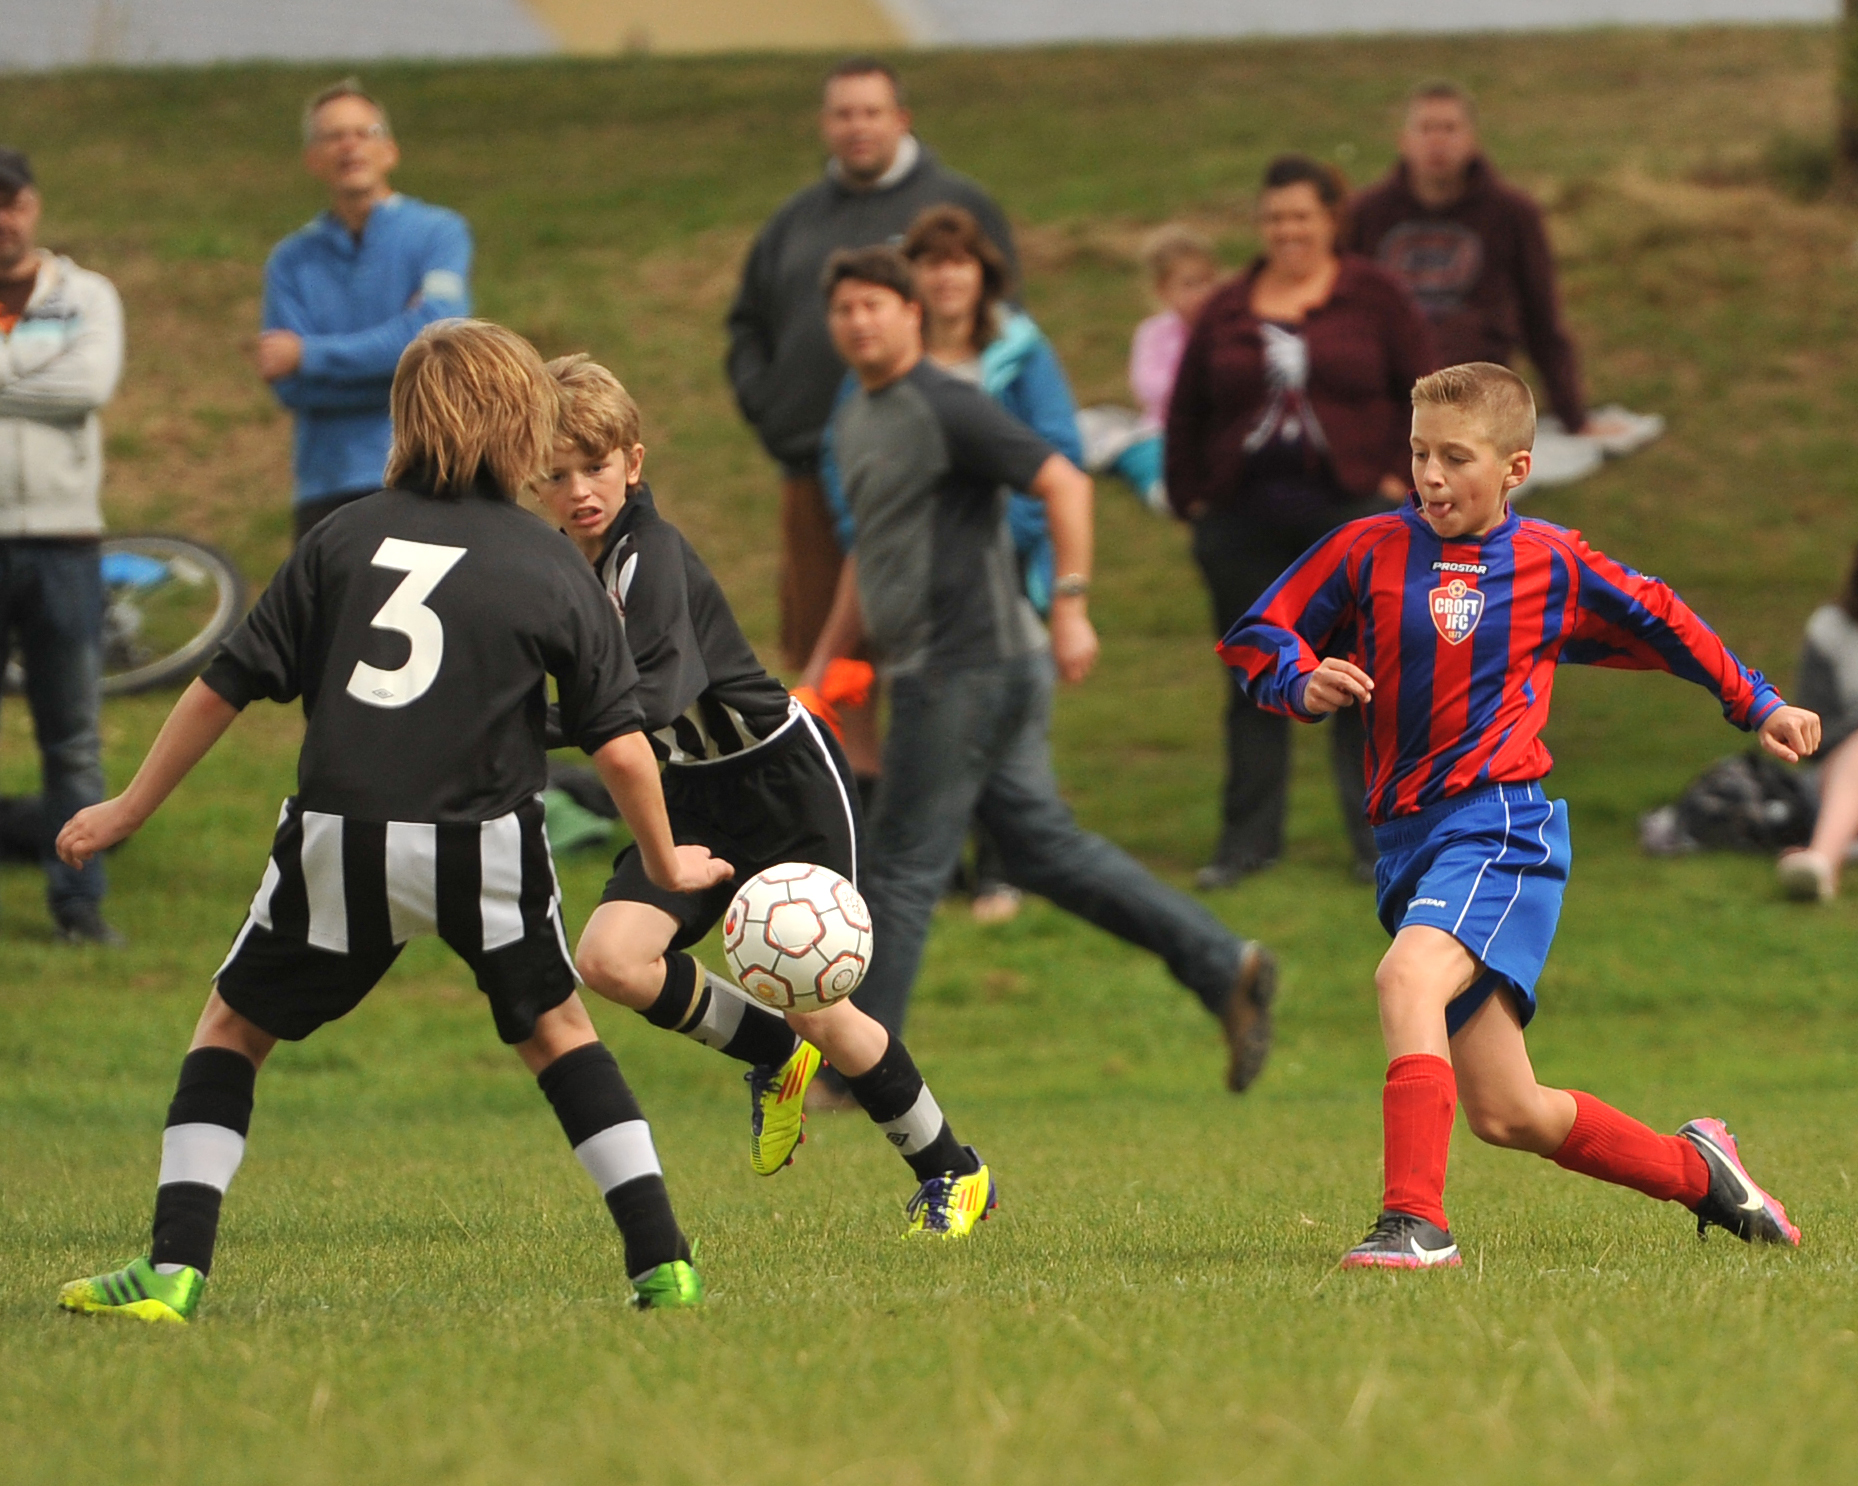 NORTH WILTS YOUTH LEAGUE: Greenmeadow rock the Robins